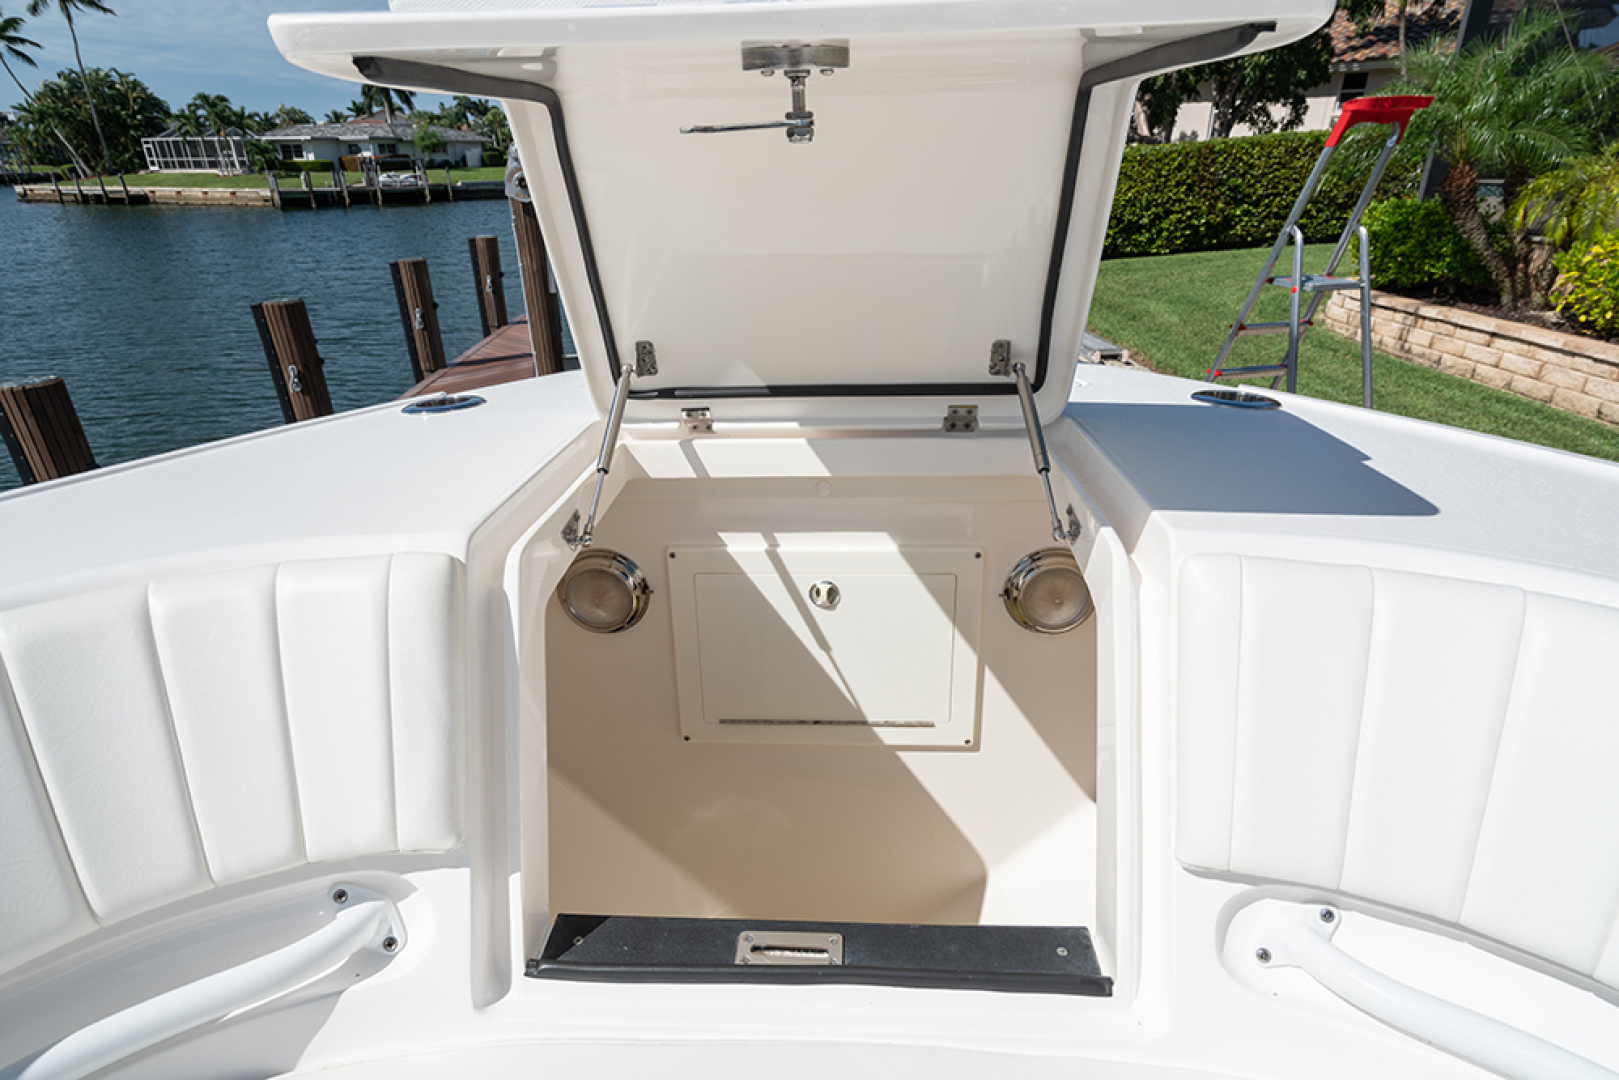 Intrepid-400 Center Console 2017-SPONTANEOUS Marco Island-Florida-United States-Hatch fwd of the bow seating area-1537597 | Thumbnail